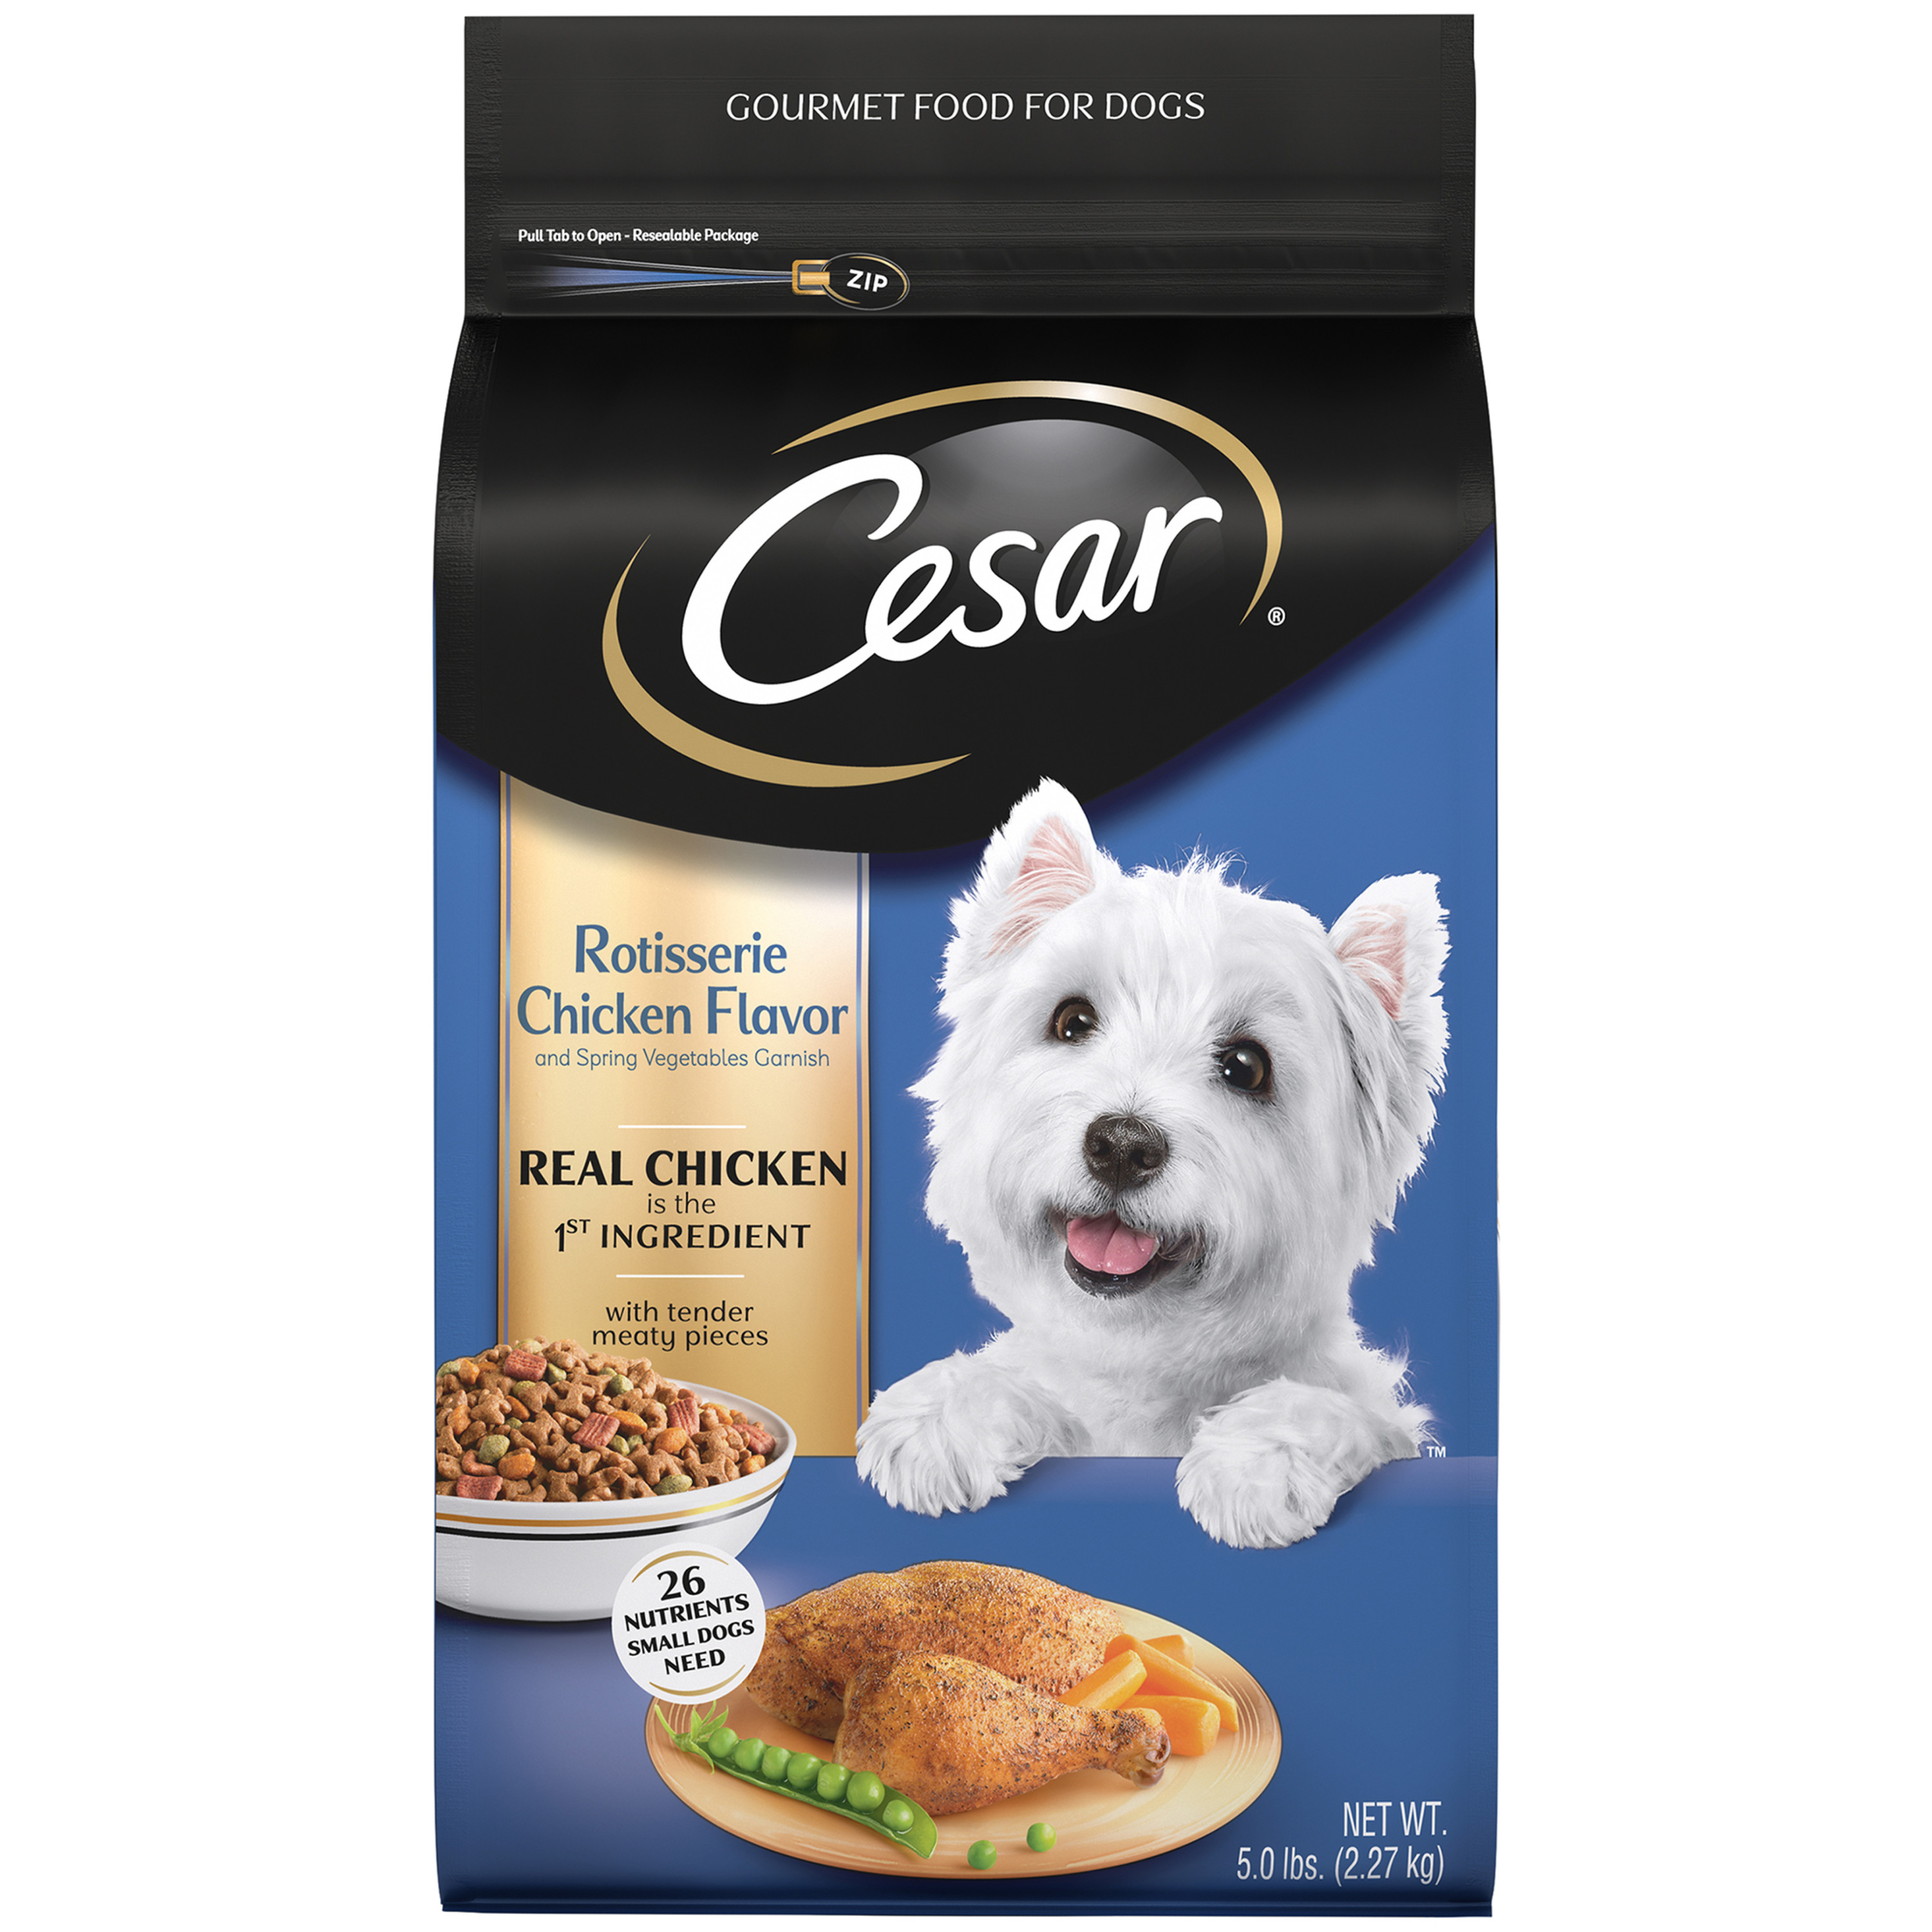 Cesar Small Breed Dry Dog Food, Rotisserie Chicken Flavor With Spring Vegetables, 5 Lb